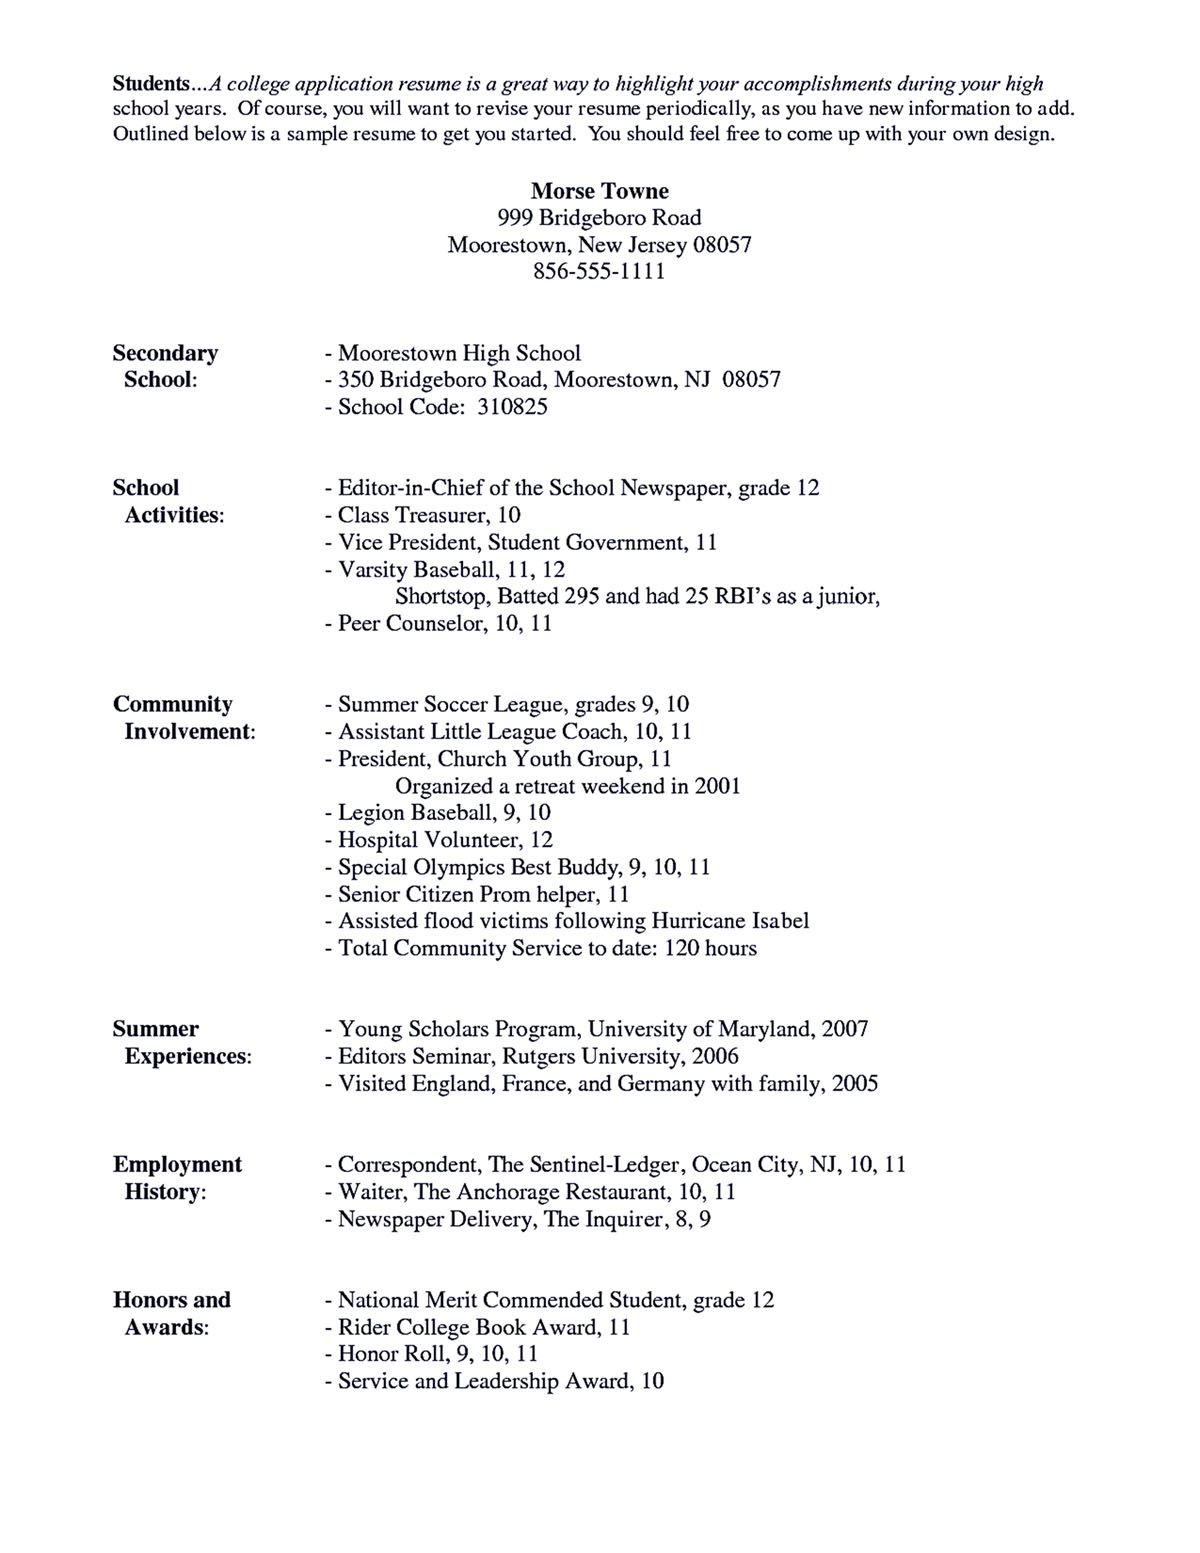 Academic Resume Sample Academic Resume Sample Academic Resume Sample Shows You How To